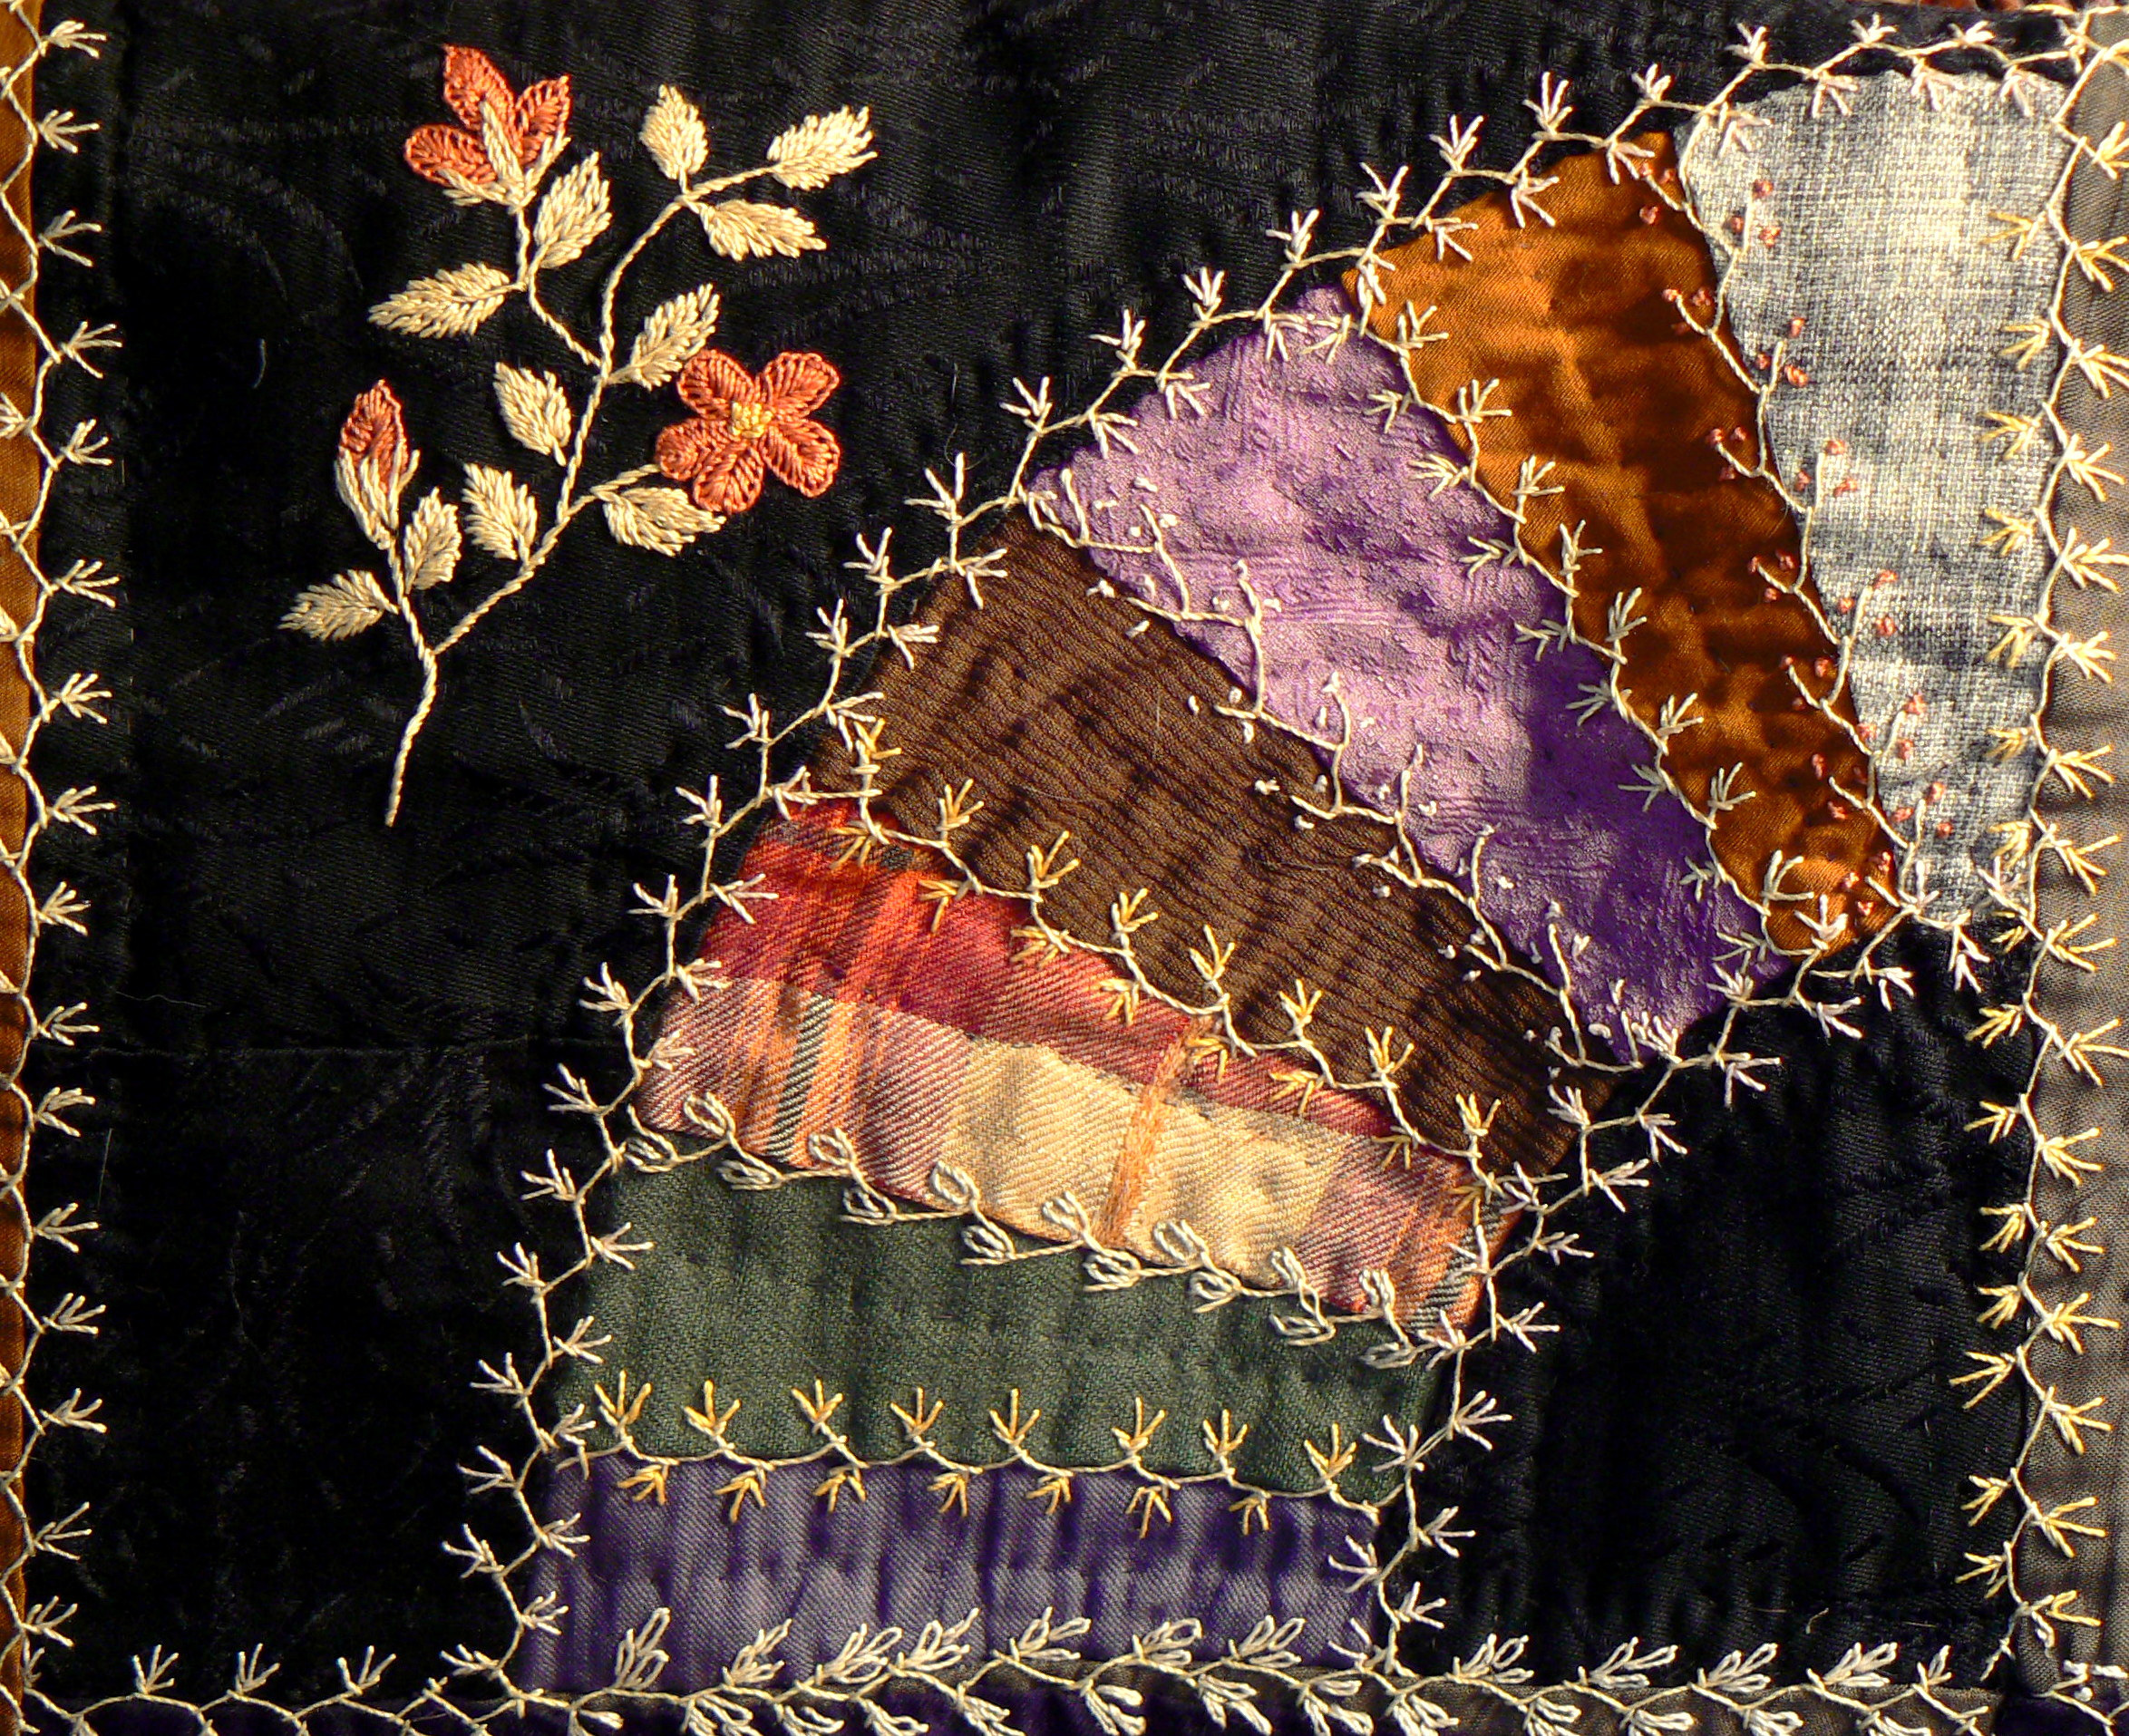 photo of antique hand sewn quilt ready for antique quilt and estate appraisal services by Jerry L. Dobesh, ASA